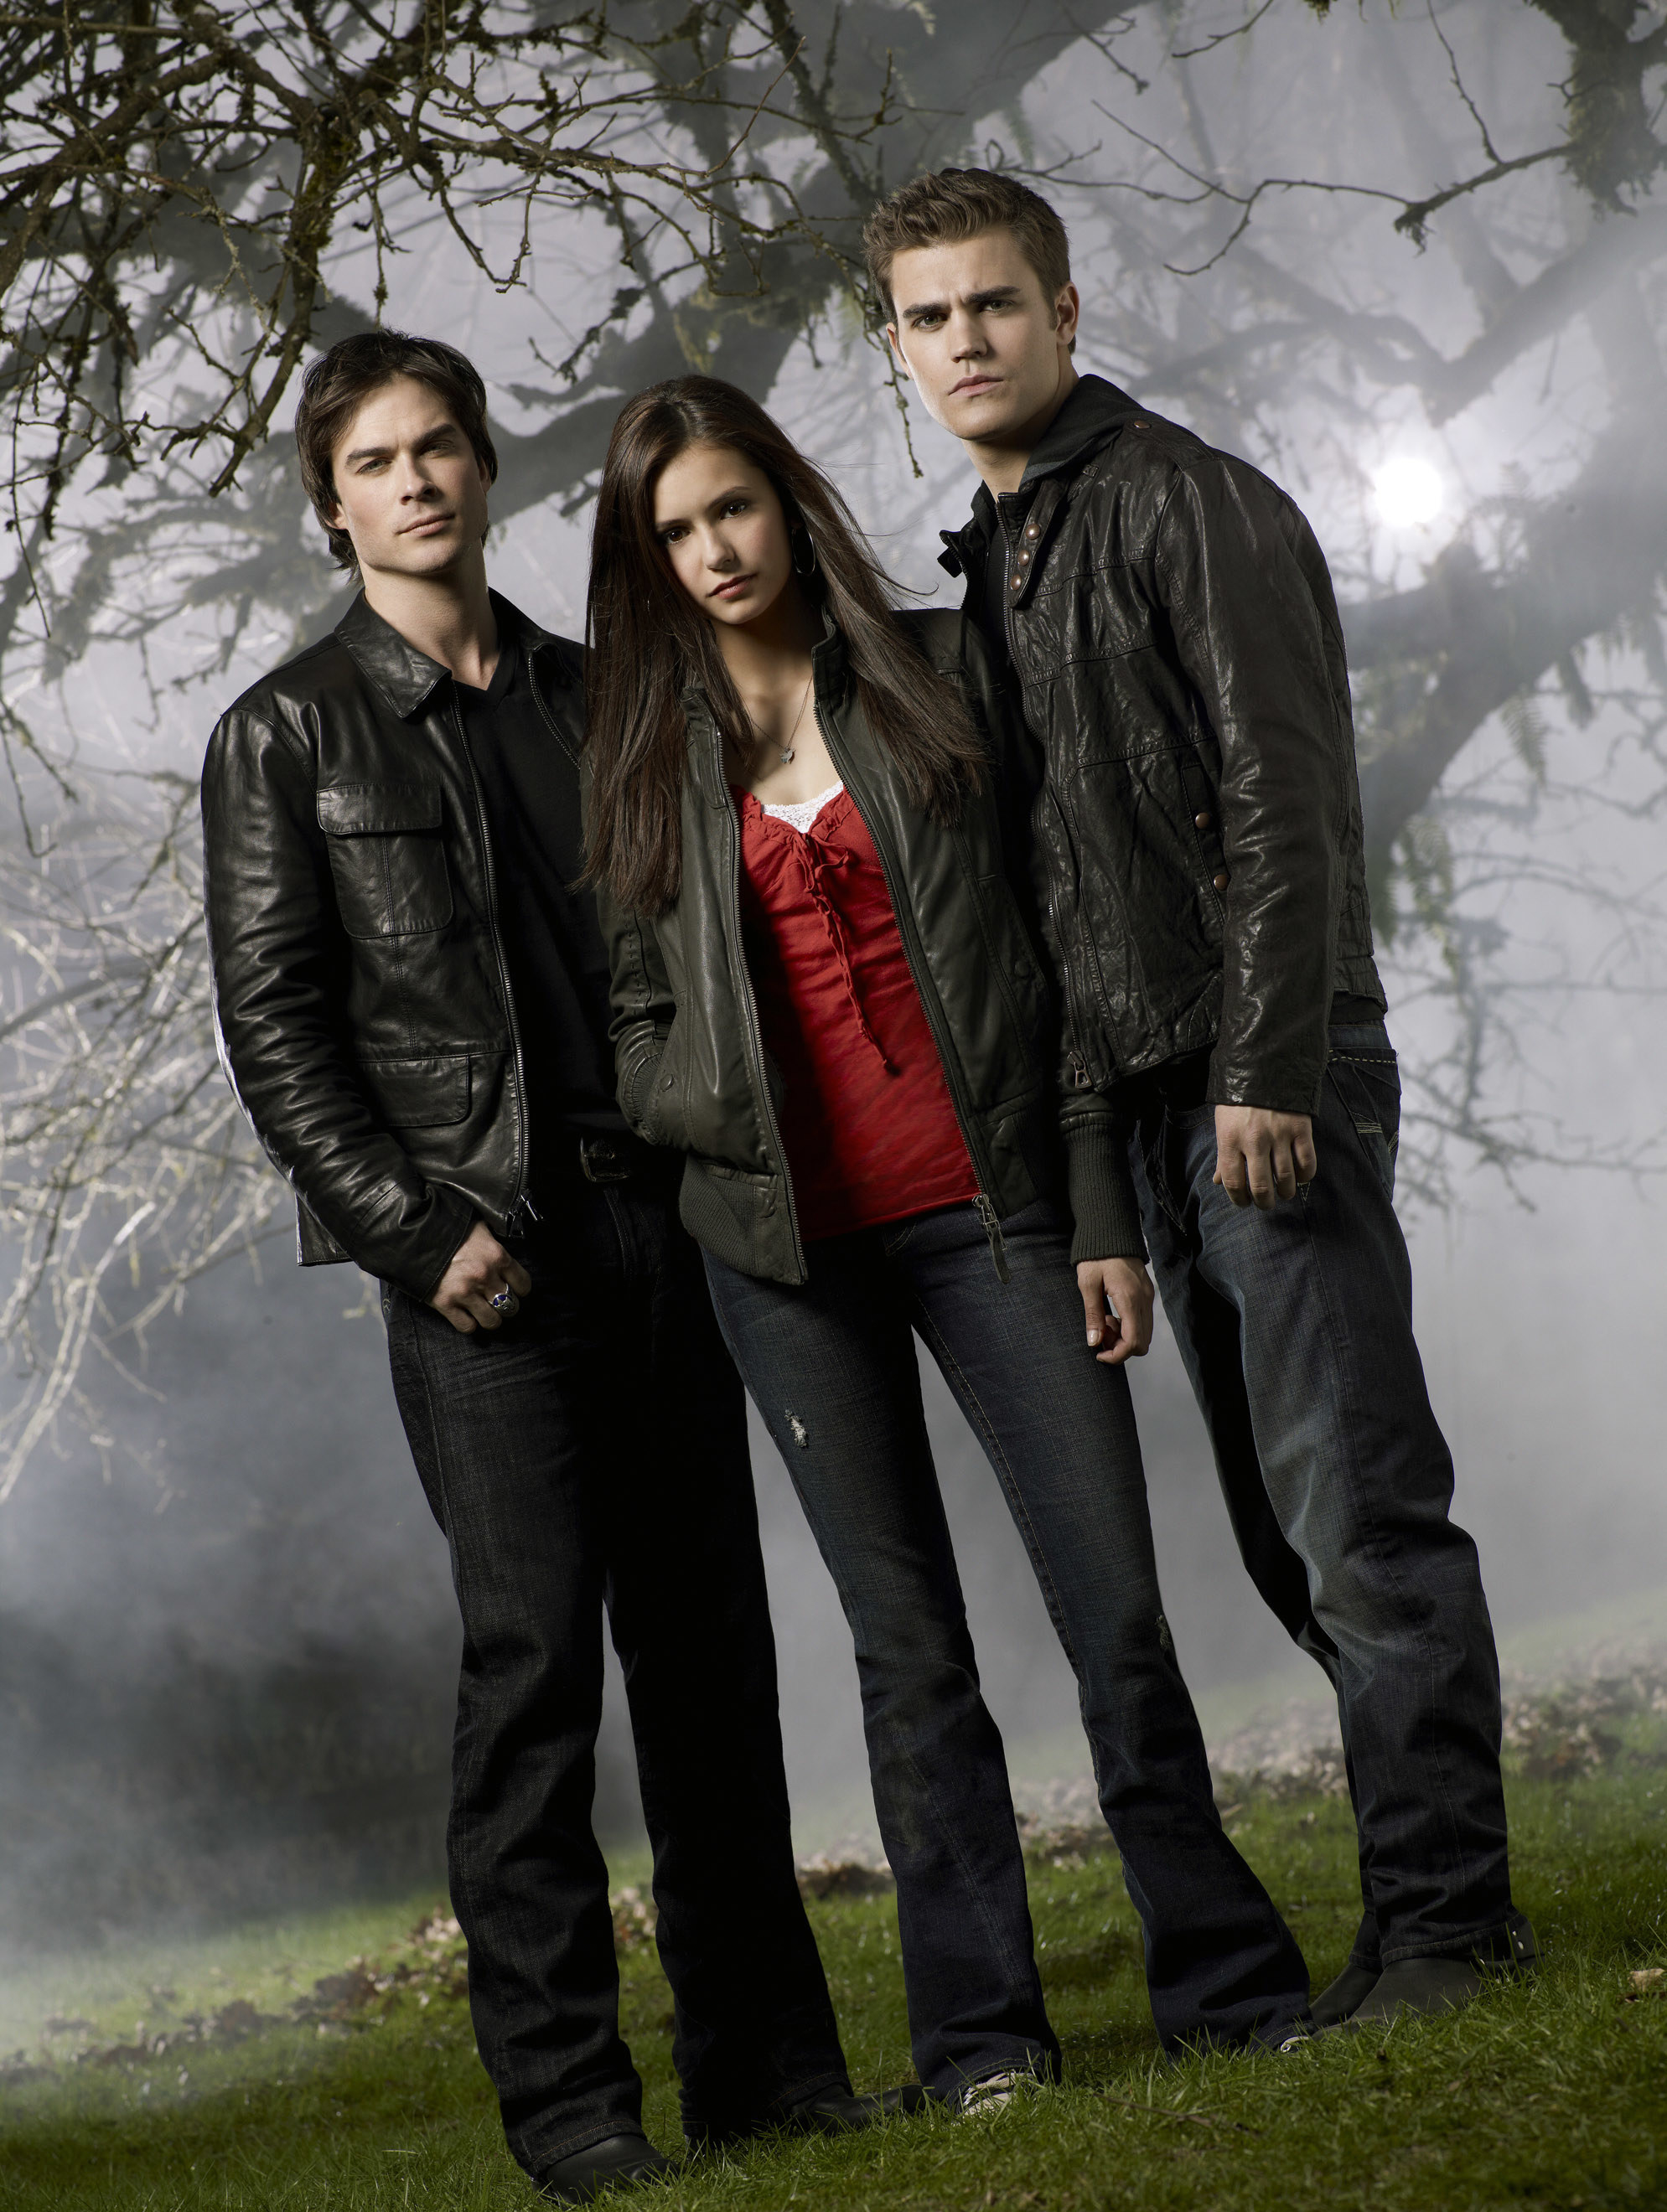 Damon and Stefan with Elena in the middle